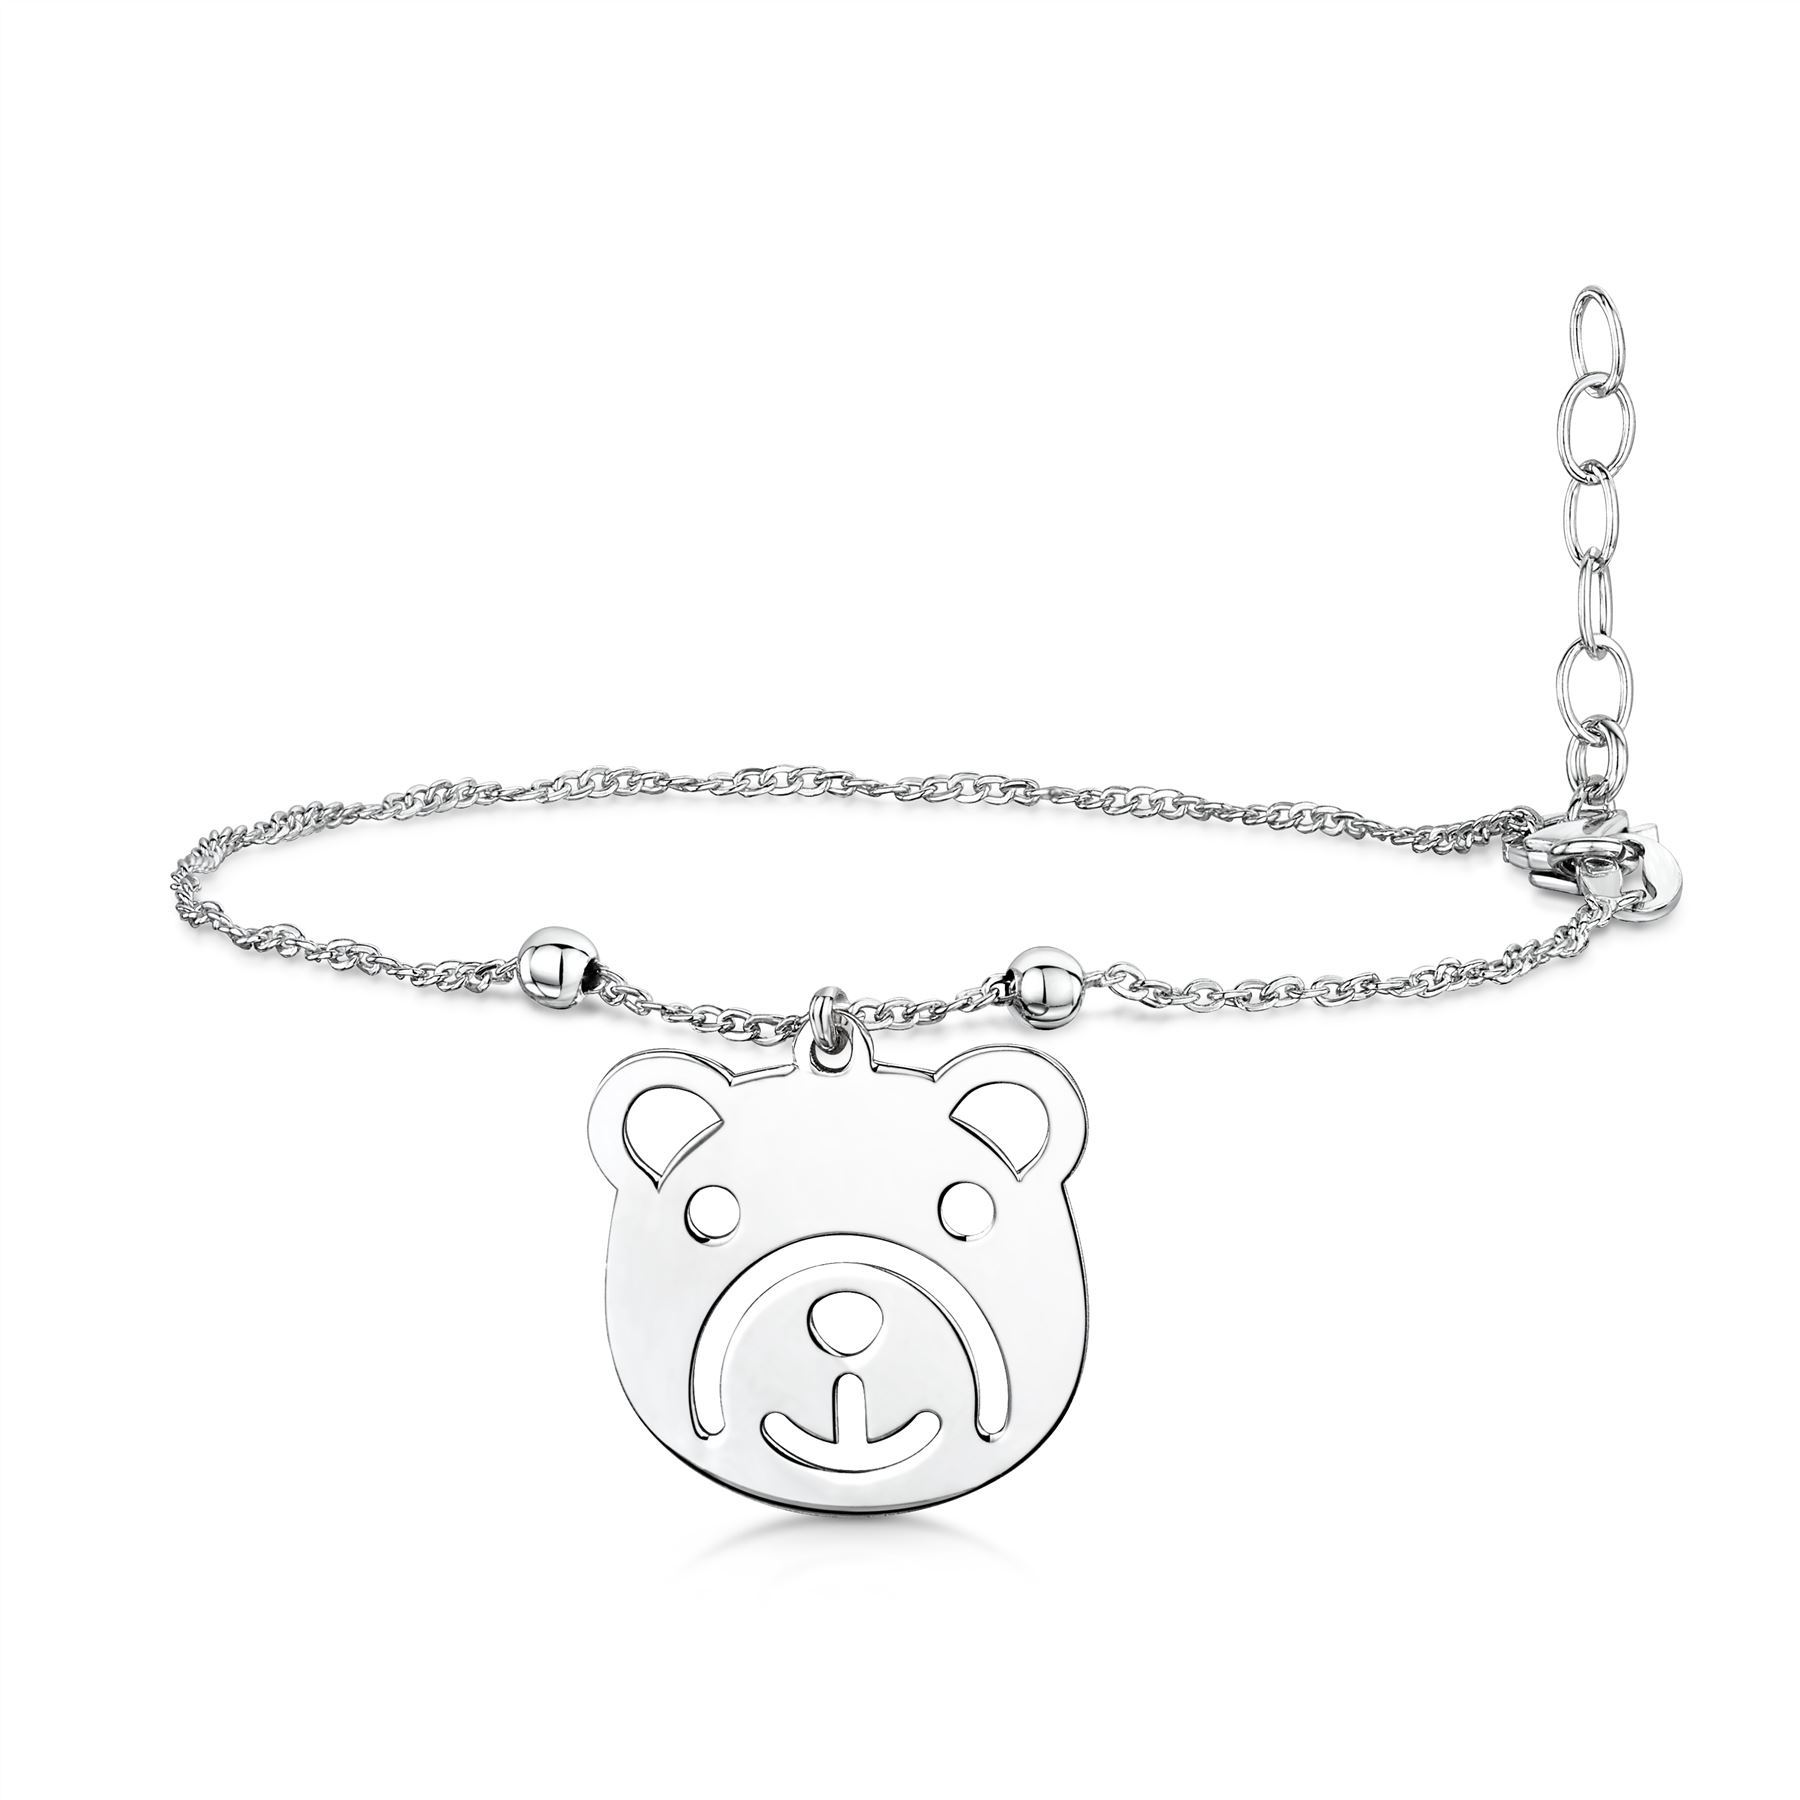 Amberta-Jewelry-925-Sterling-Silver-Adjustable-Anklet-for-Women-Made-in-Italy miniature 18